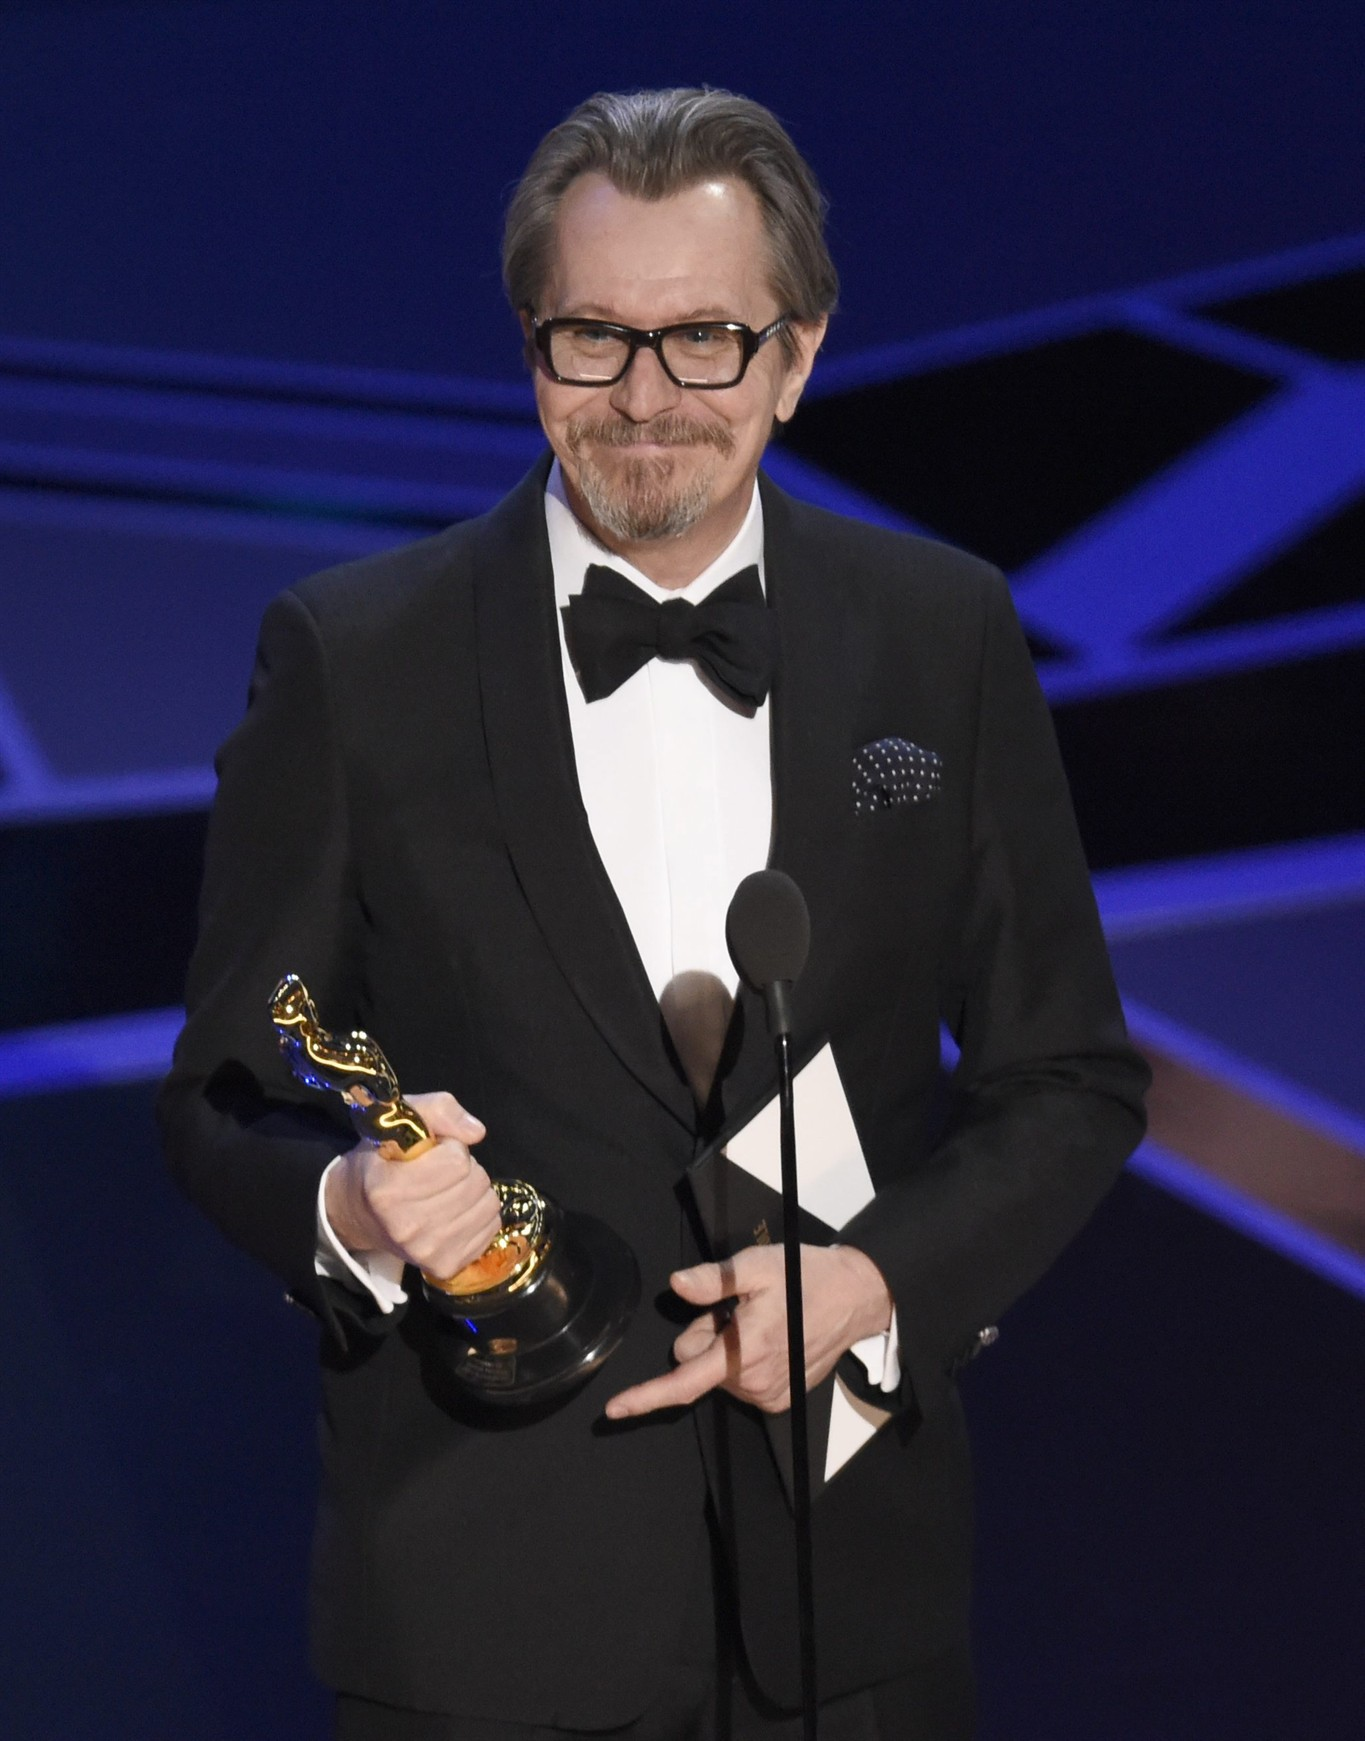 Gary Oldman Accepts The Award For Best Performance By An Actor In A Leading Role For Darkest Hour At The Oscars On Sunday March